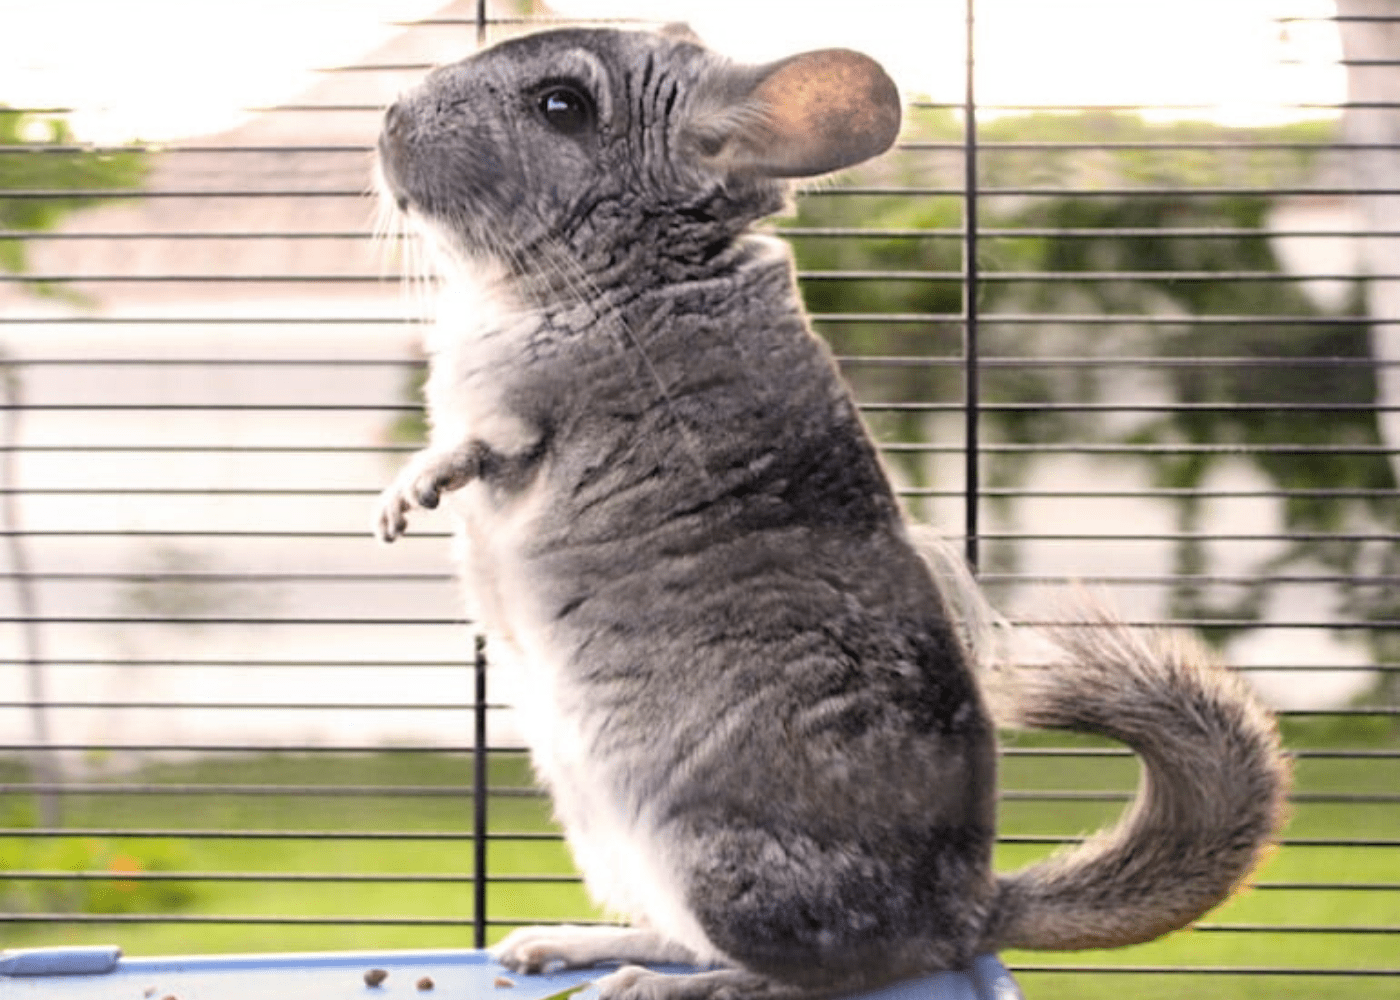 Small pets for kids in Singapore: Chinchillas